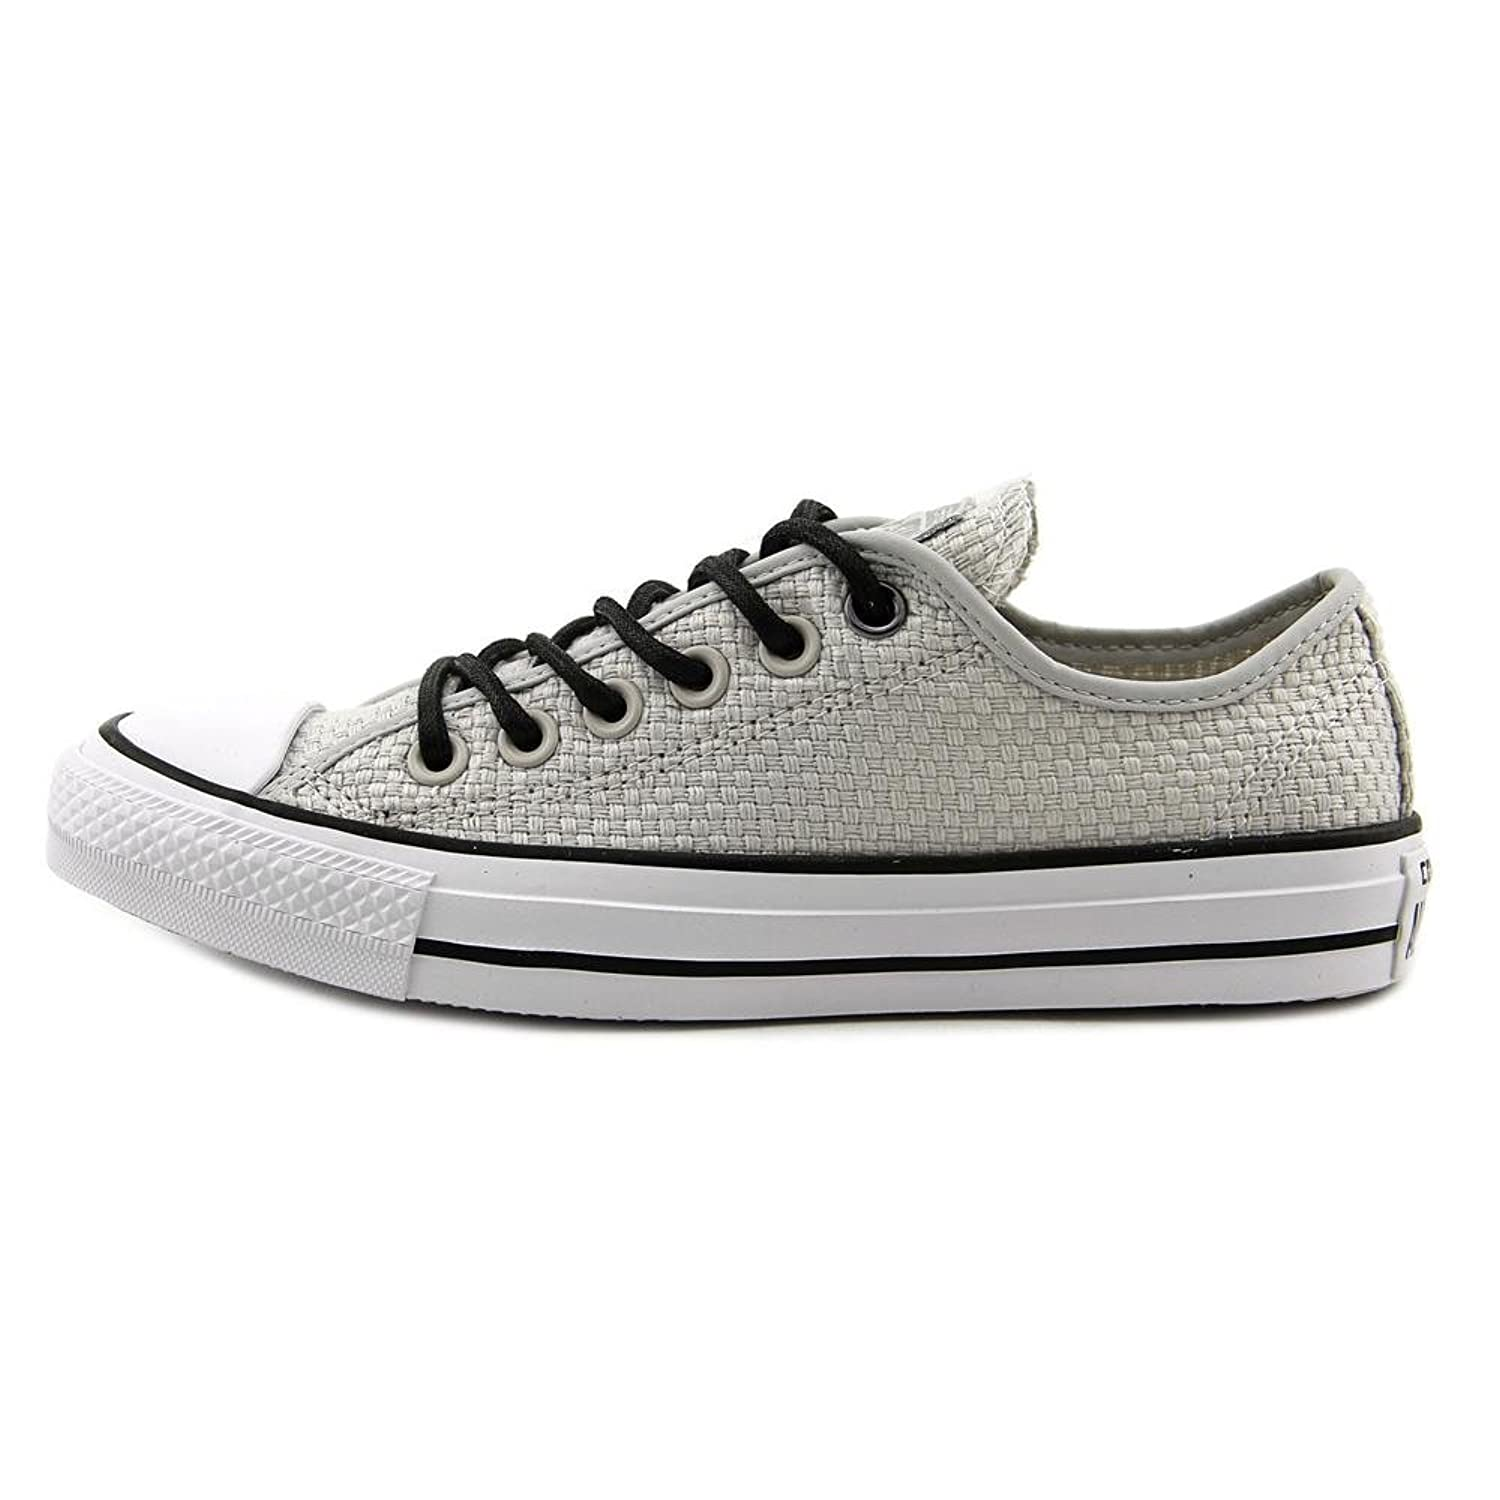 star converse lacesconverse price mid unisex all p shoes mens blackblackwhiteconverse shoe discount tops hi red white weapon sneakers quilted salebest chuck sale quilt black taylor ox